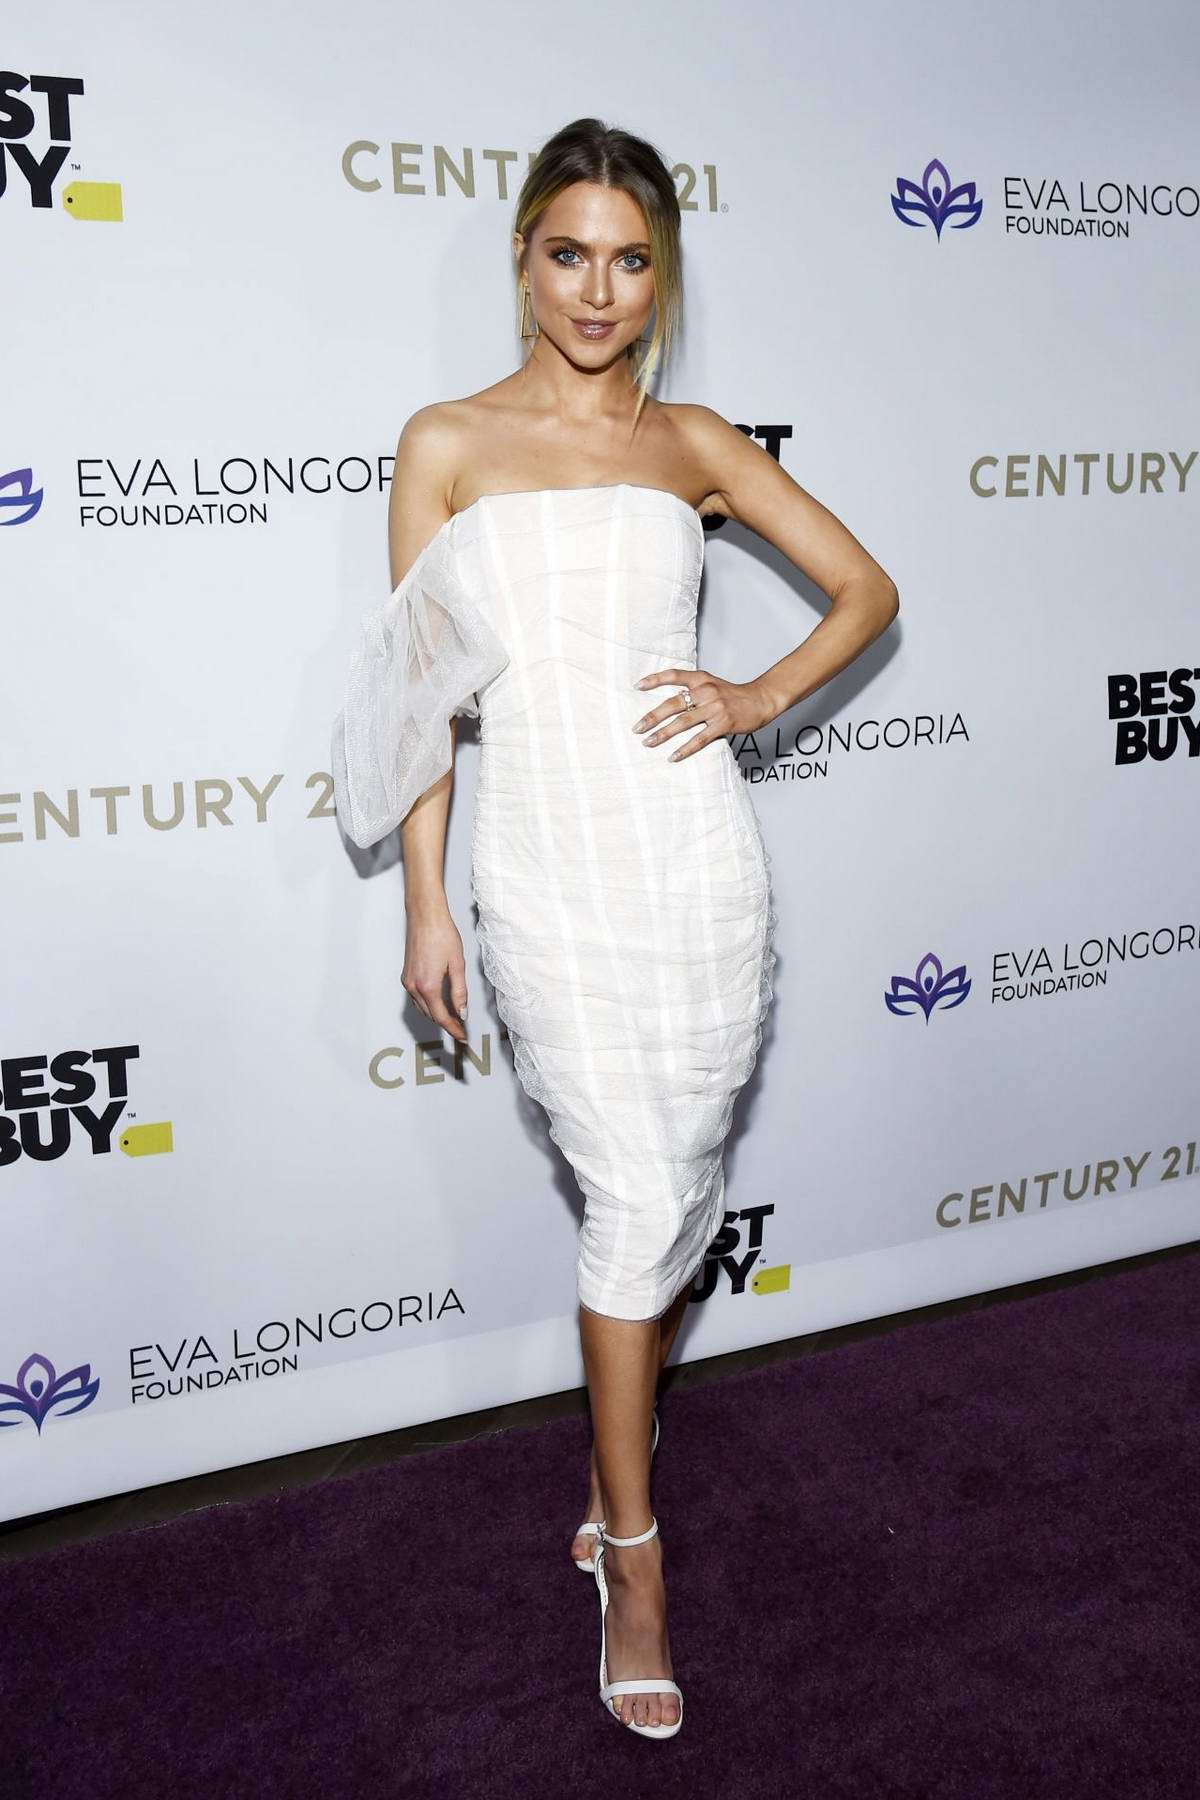 Anne Winters attends The Eva Longoria Foundation Gala at the Four Seasons Los Angeles in Beverly Hills, California